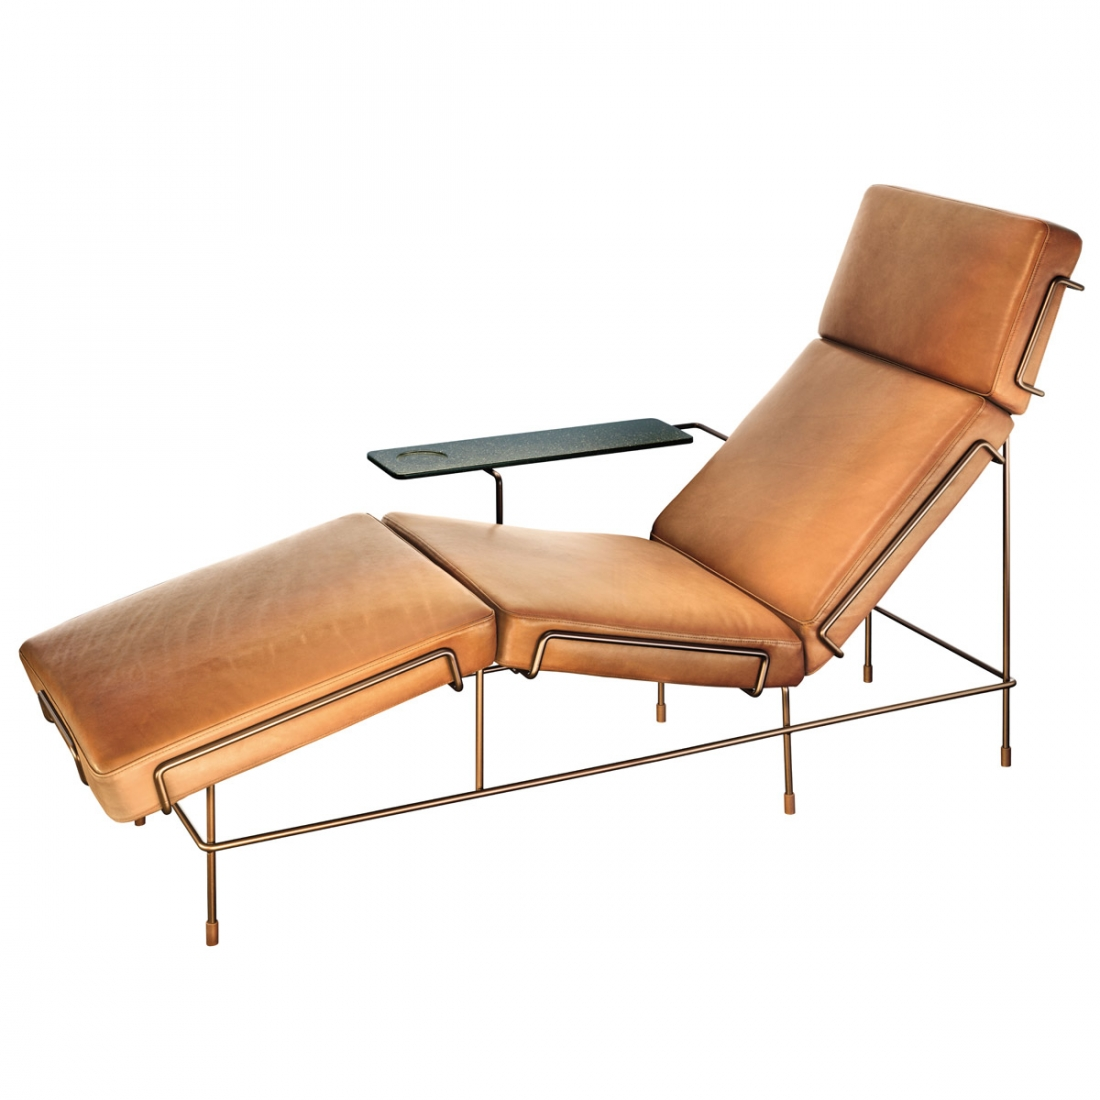 Chaise longue design traffic par magis - Chaise longue hesperide ...